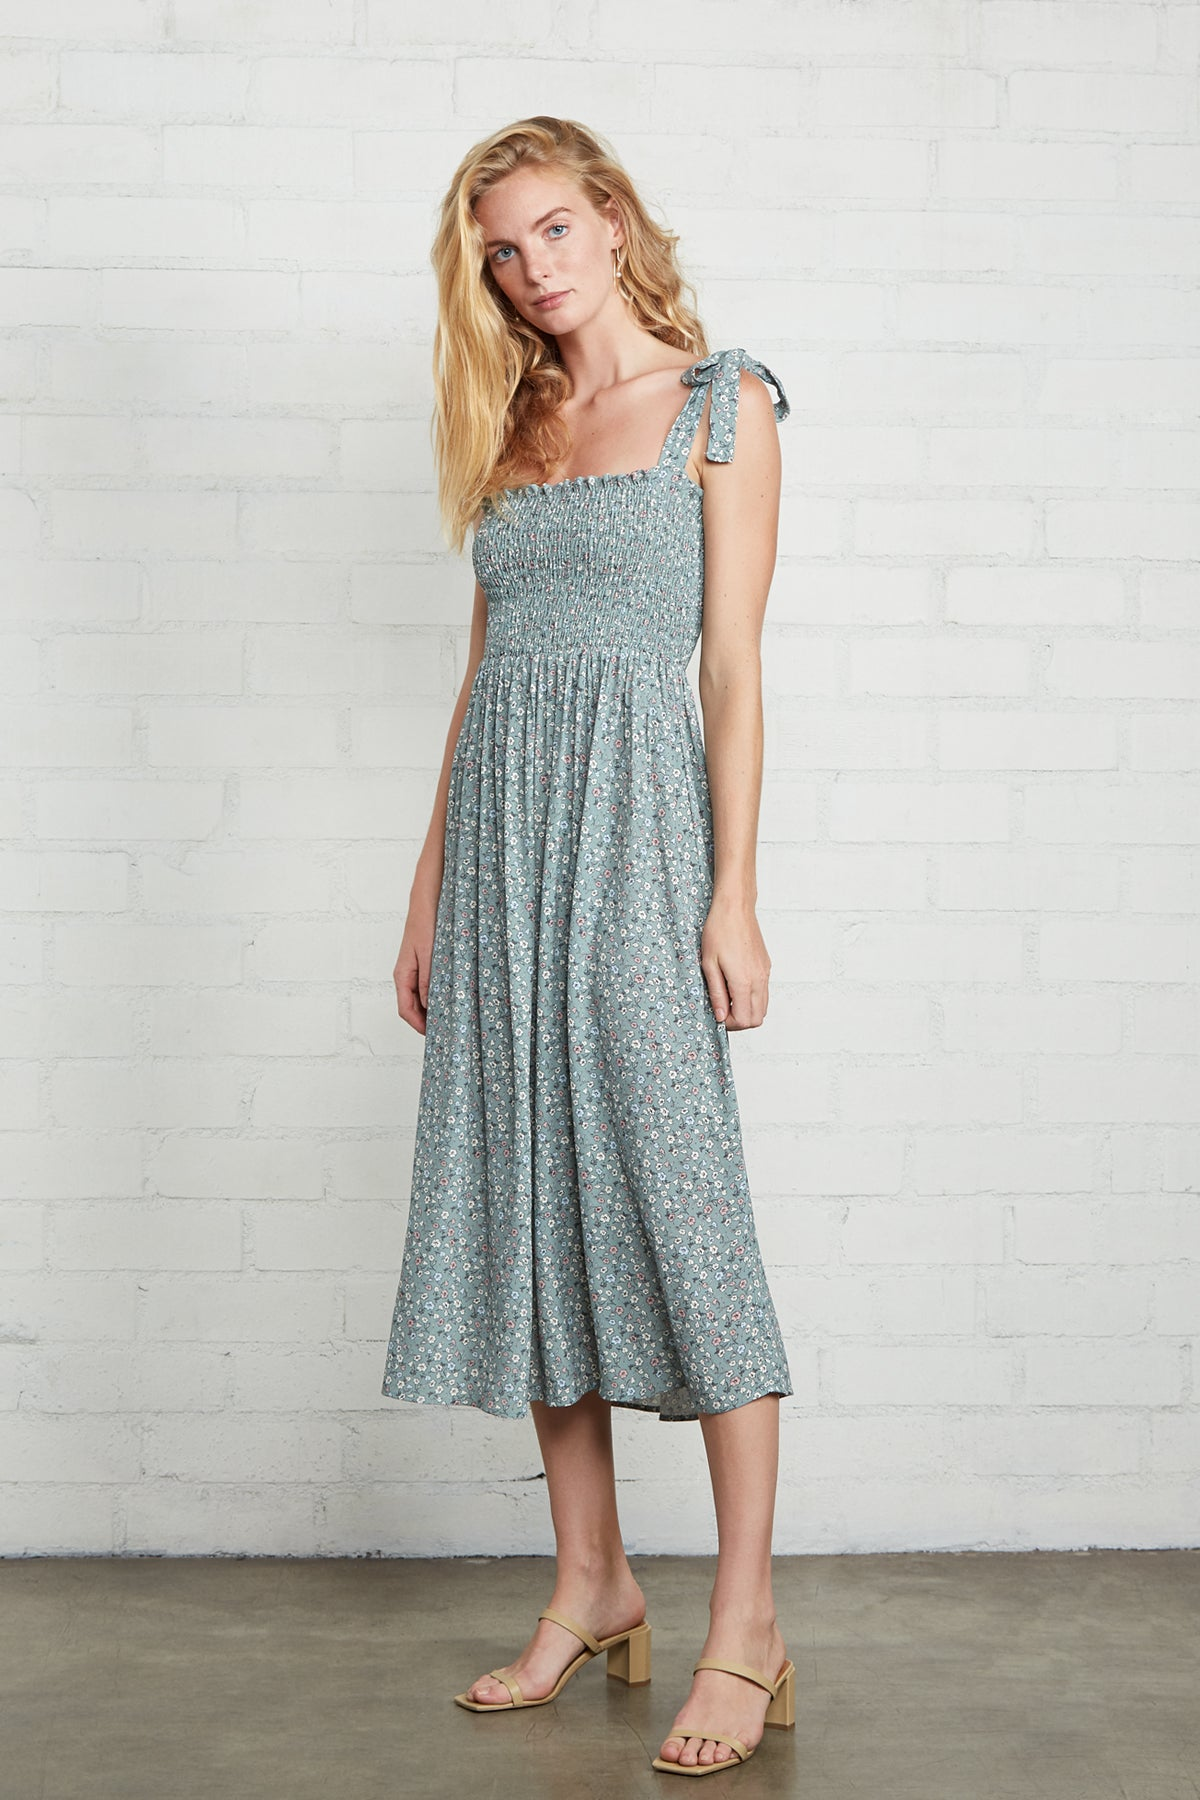 Crepe Pixie Dress - Forget Me Not